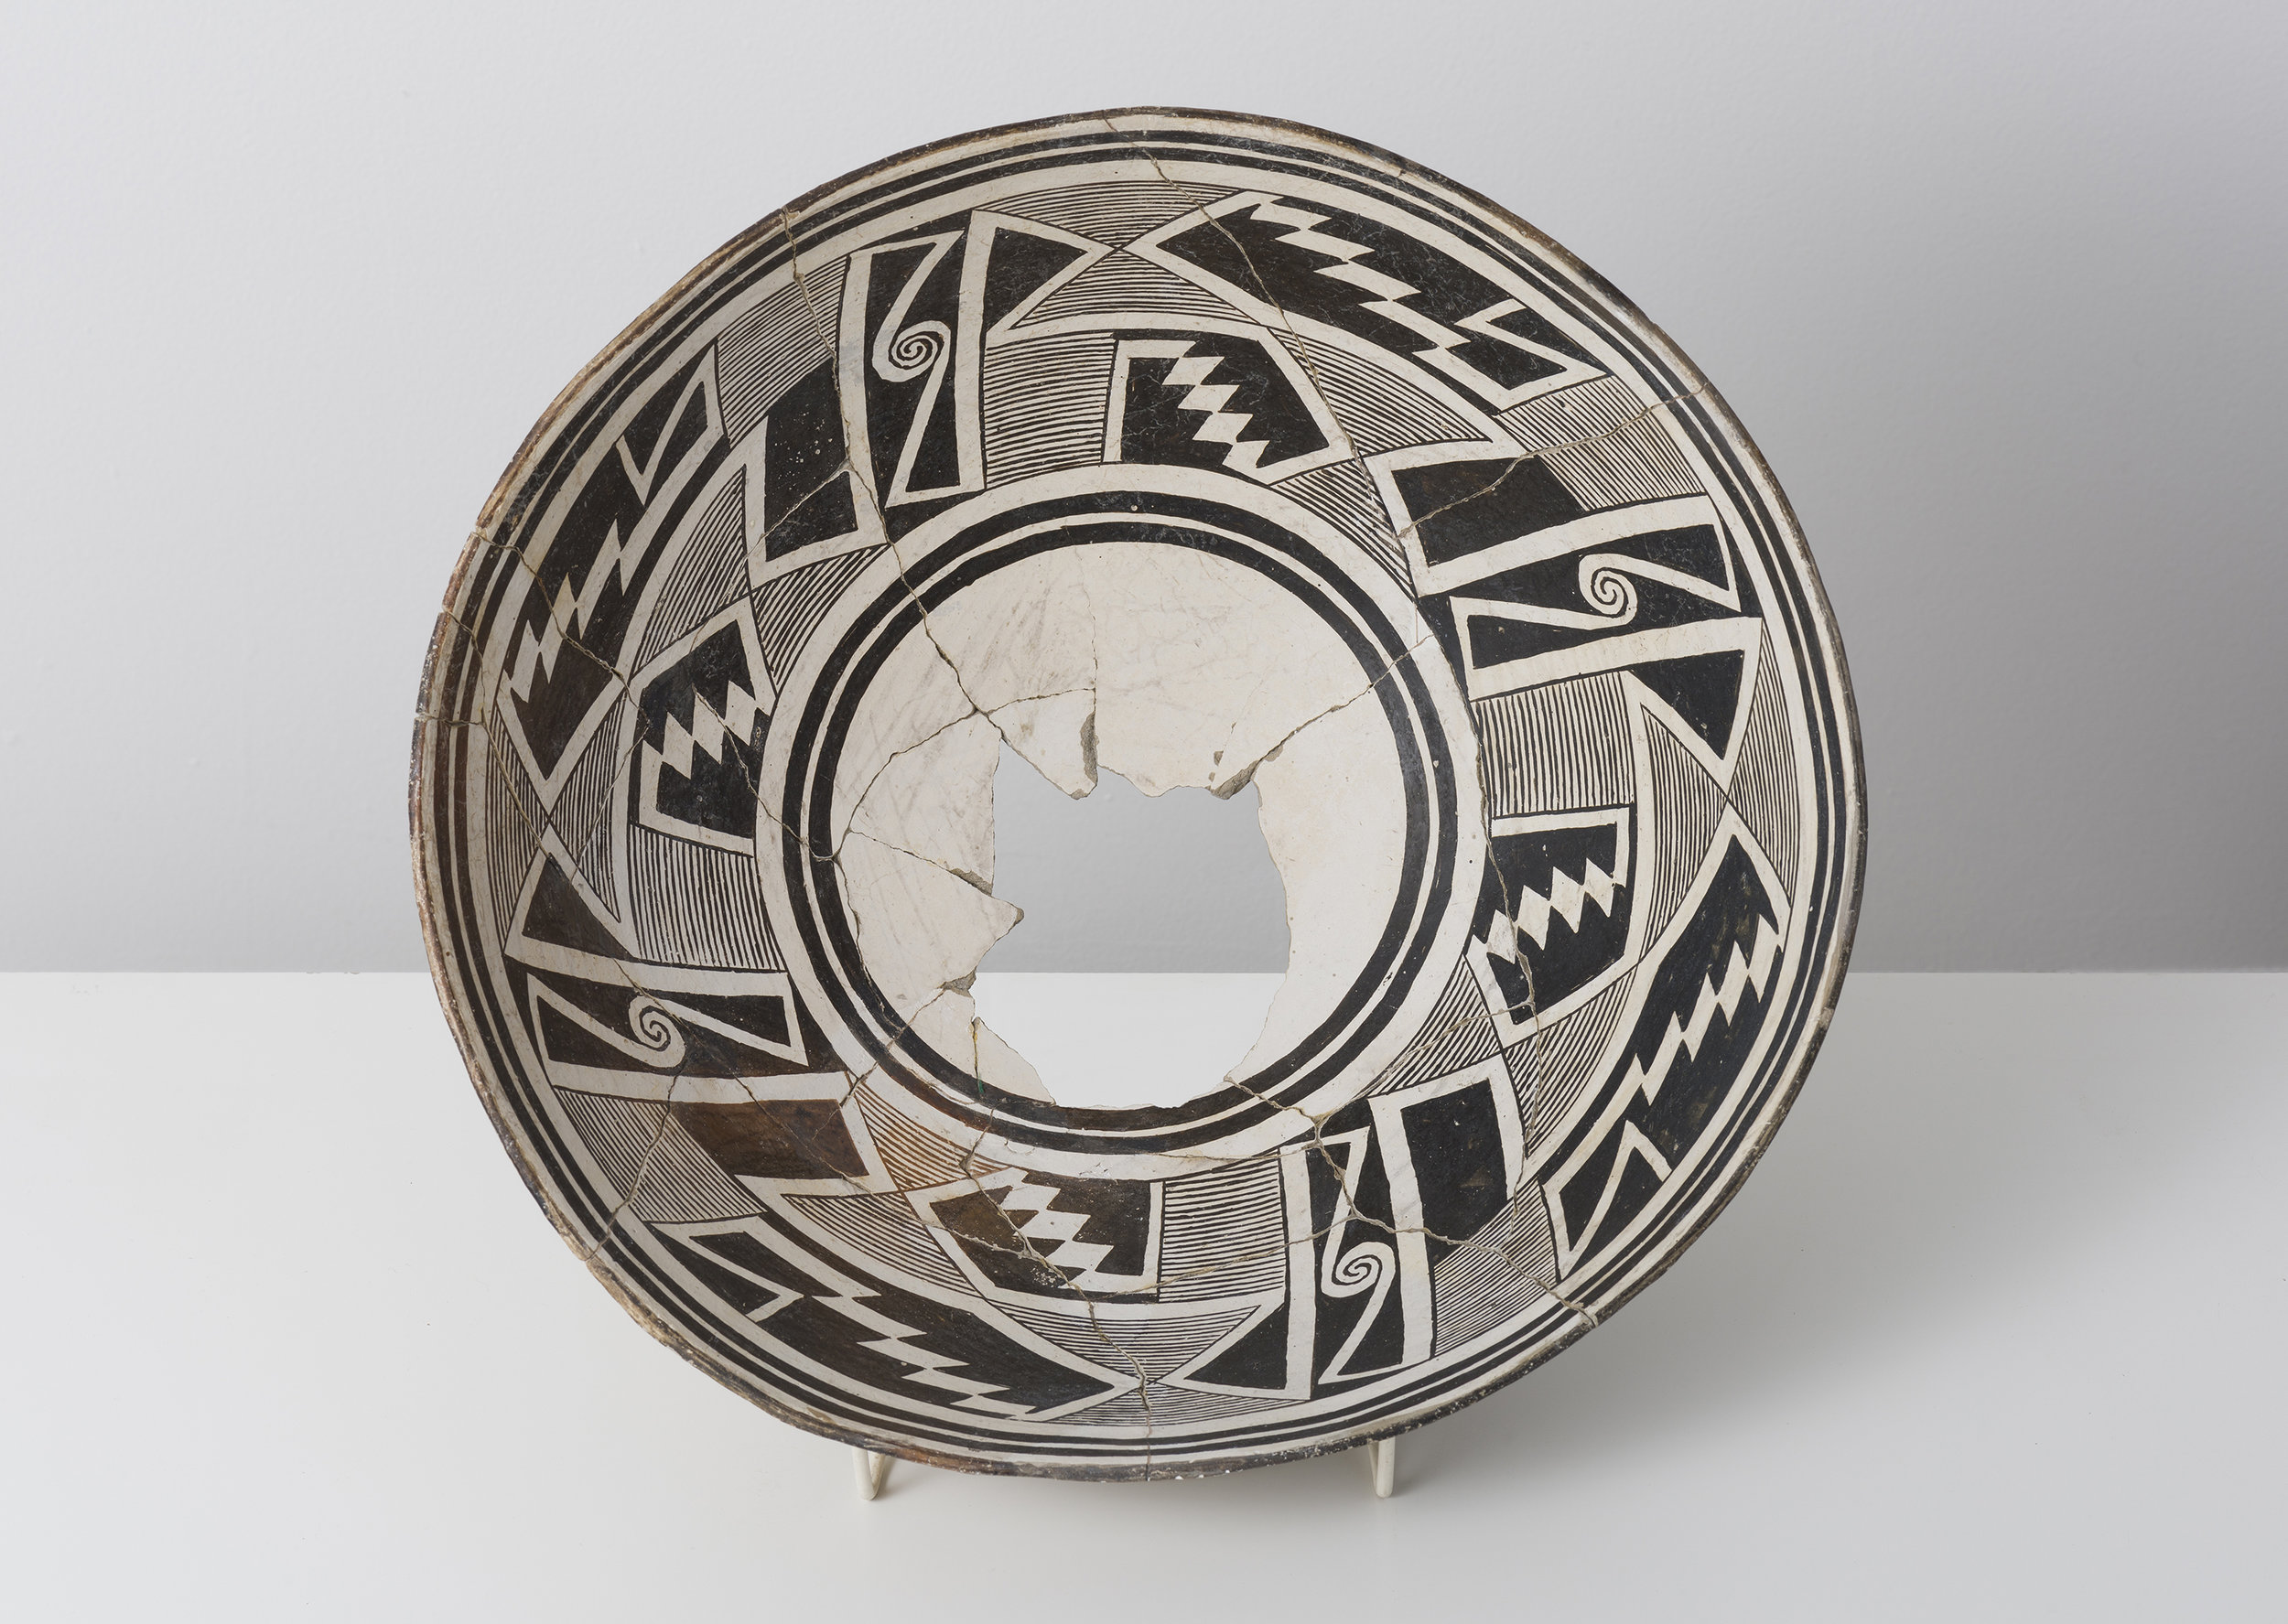 Classic Mimbres Black-on-white  Abstracted datura buds with entoptic patterns c. 900 - 1000 CE Painted ceramic 13 inches diameter, 4 inches depth